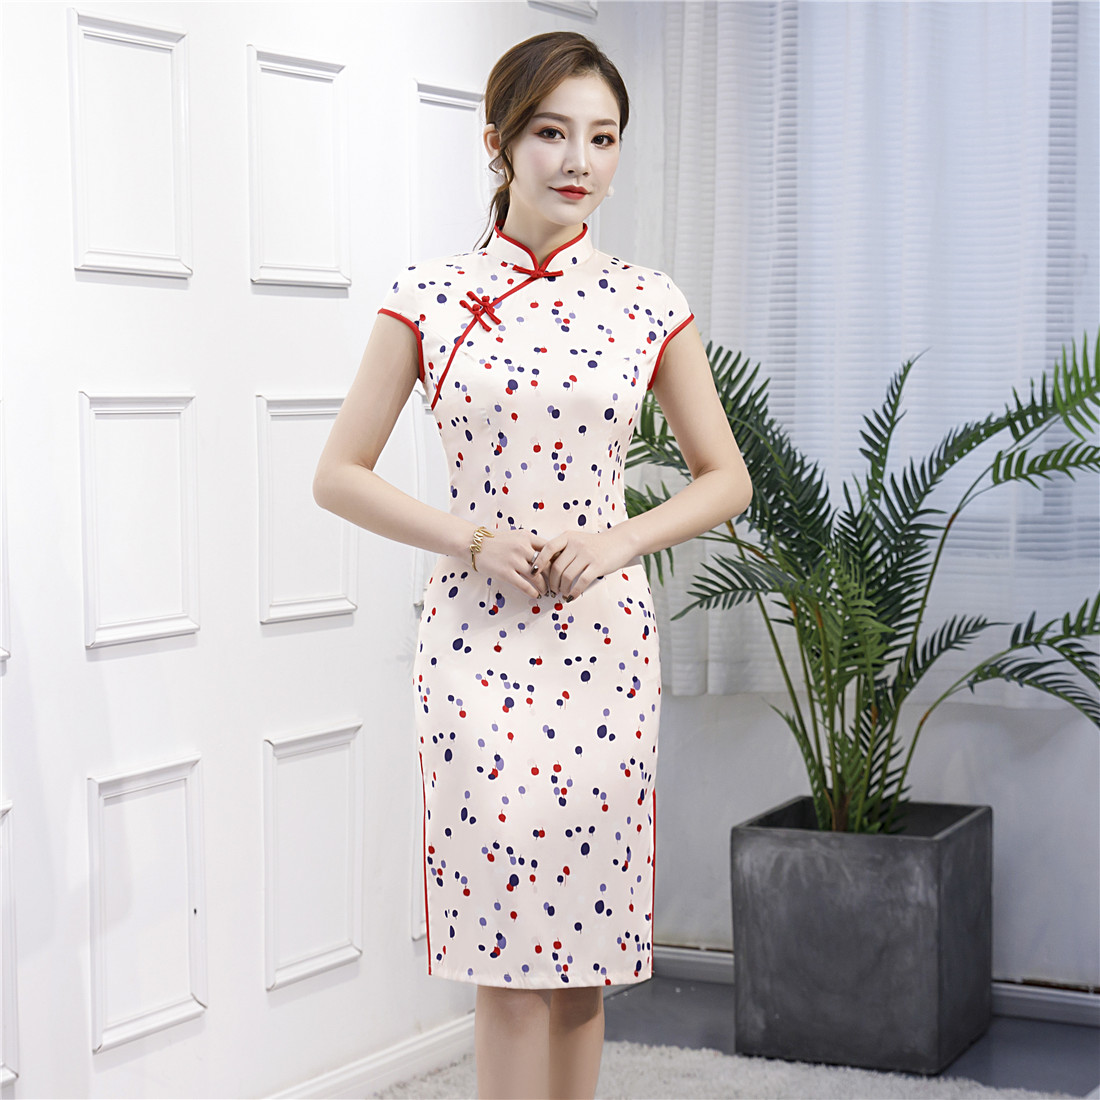 Beige Print Dot Big Size 3XL Women Cheongsam Satin Mandarin Collar Vintage Button <font><b>Chinese</b></font> <font><b>Dress</b></font> <font><b>Sexy</b></font> Elegant Novelty Vestidos image